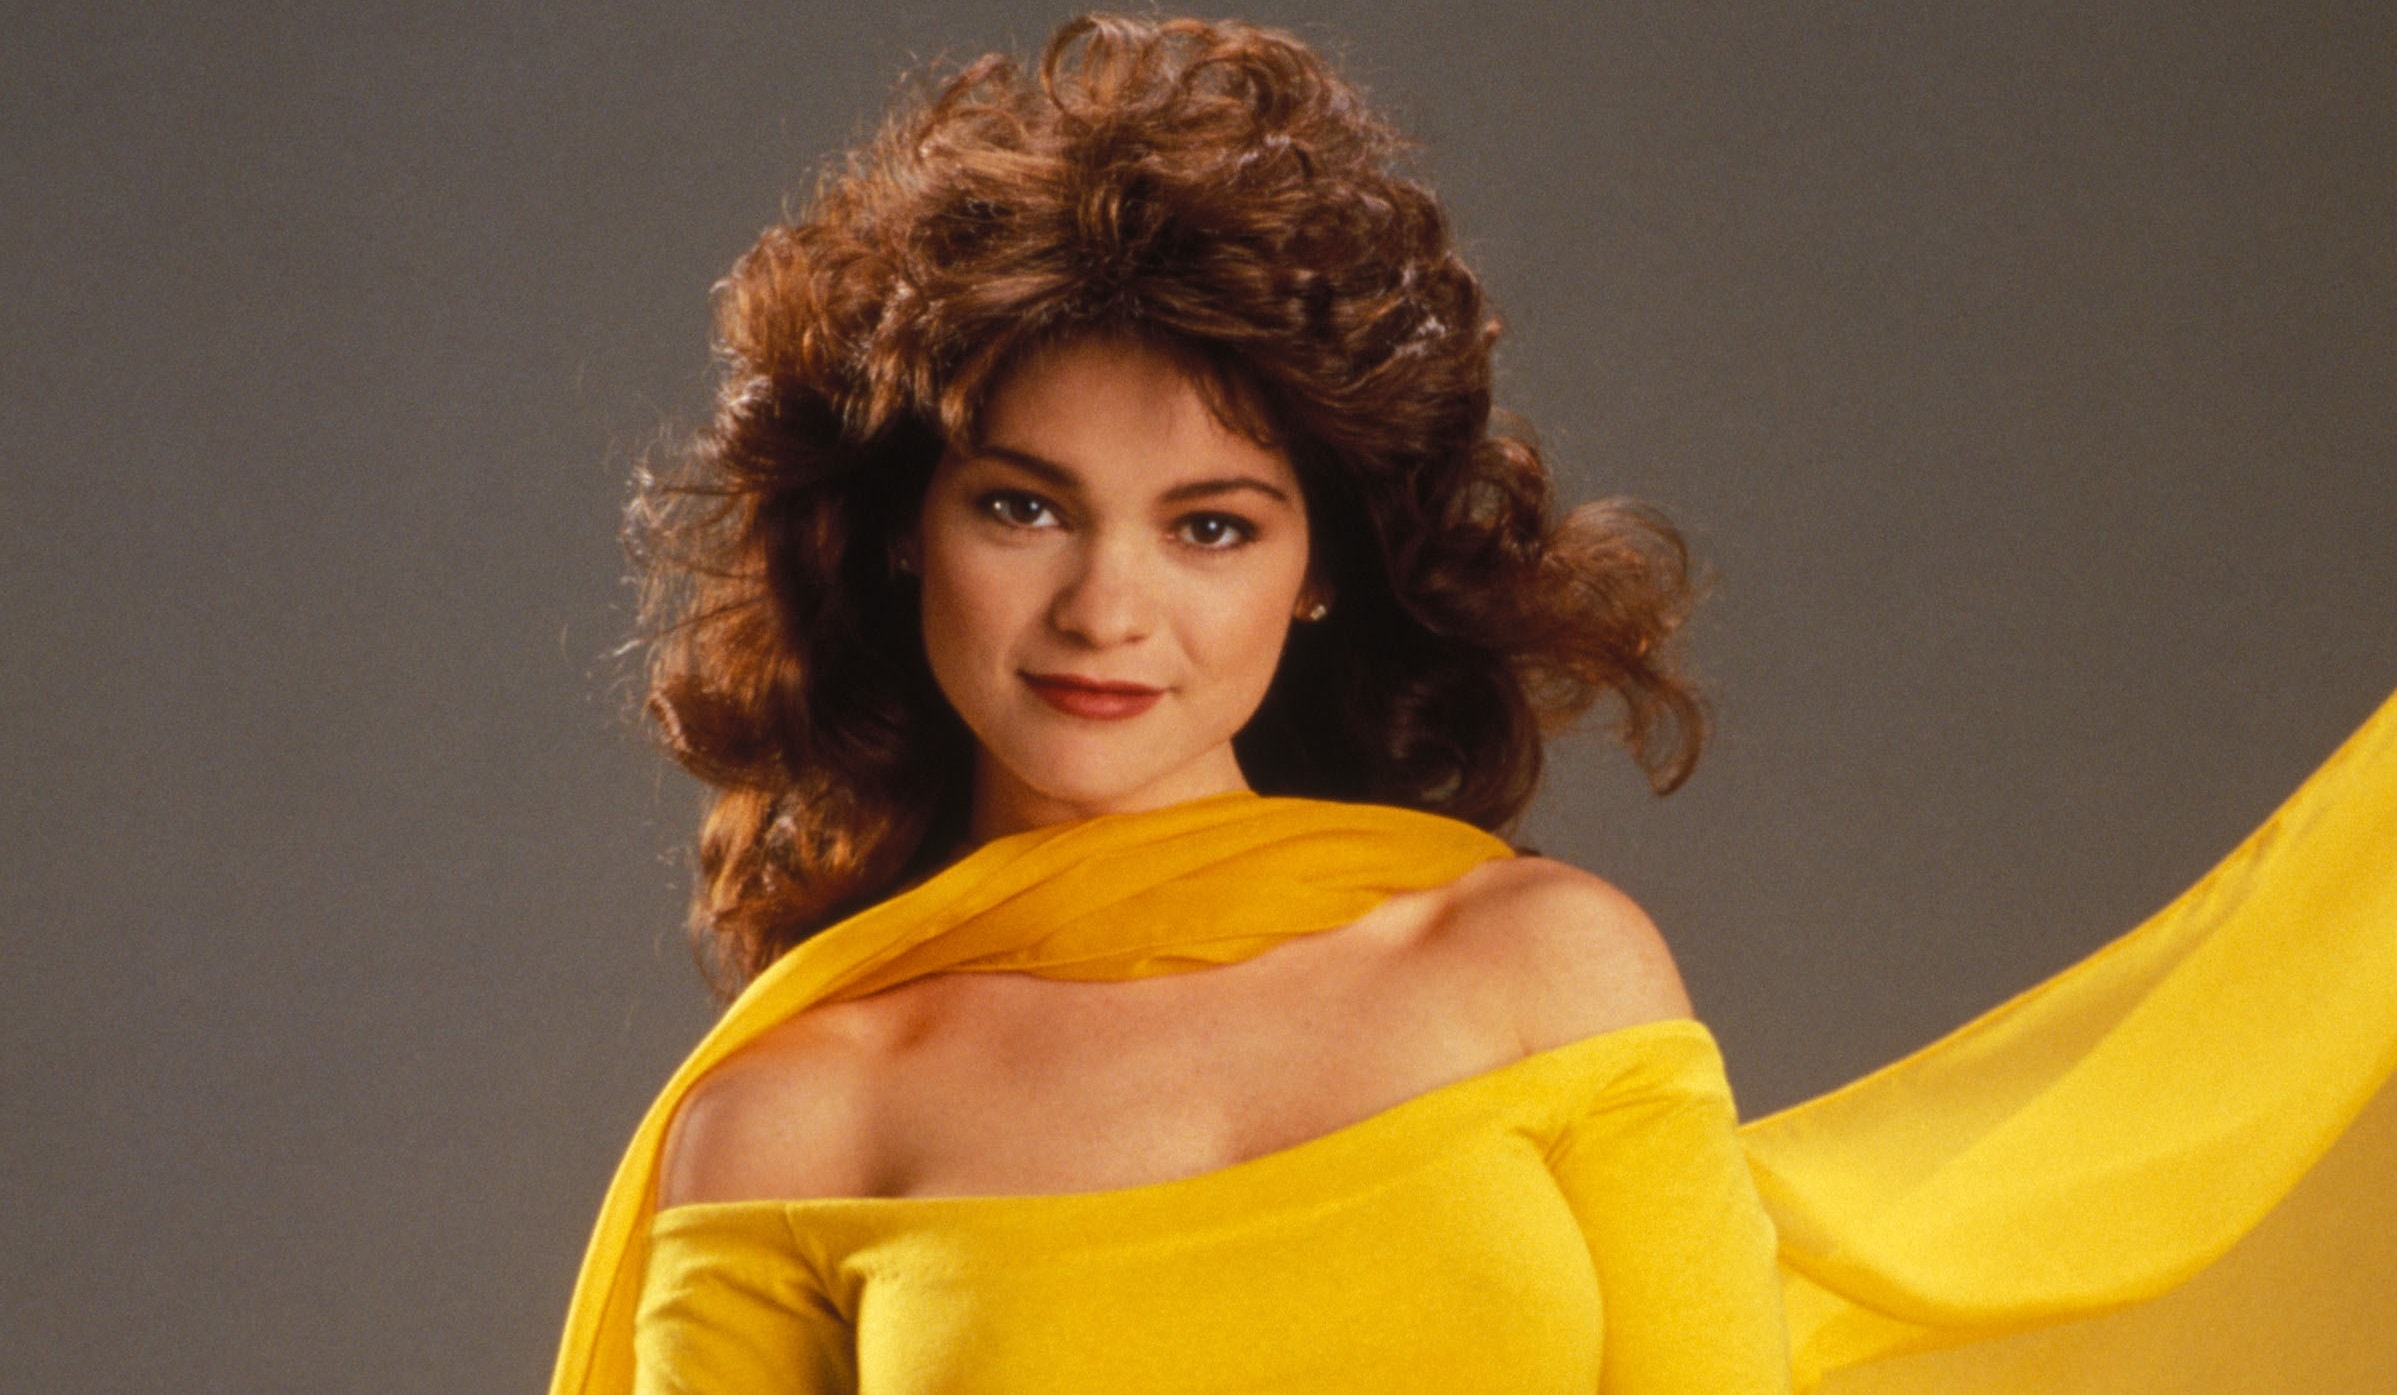 Valerie Bertinelli Widescreen for desktop